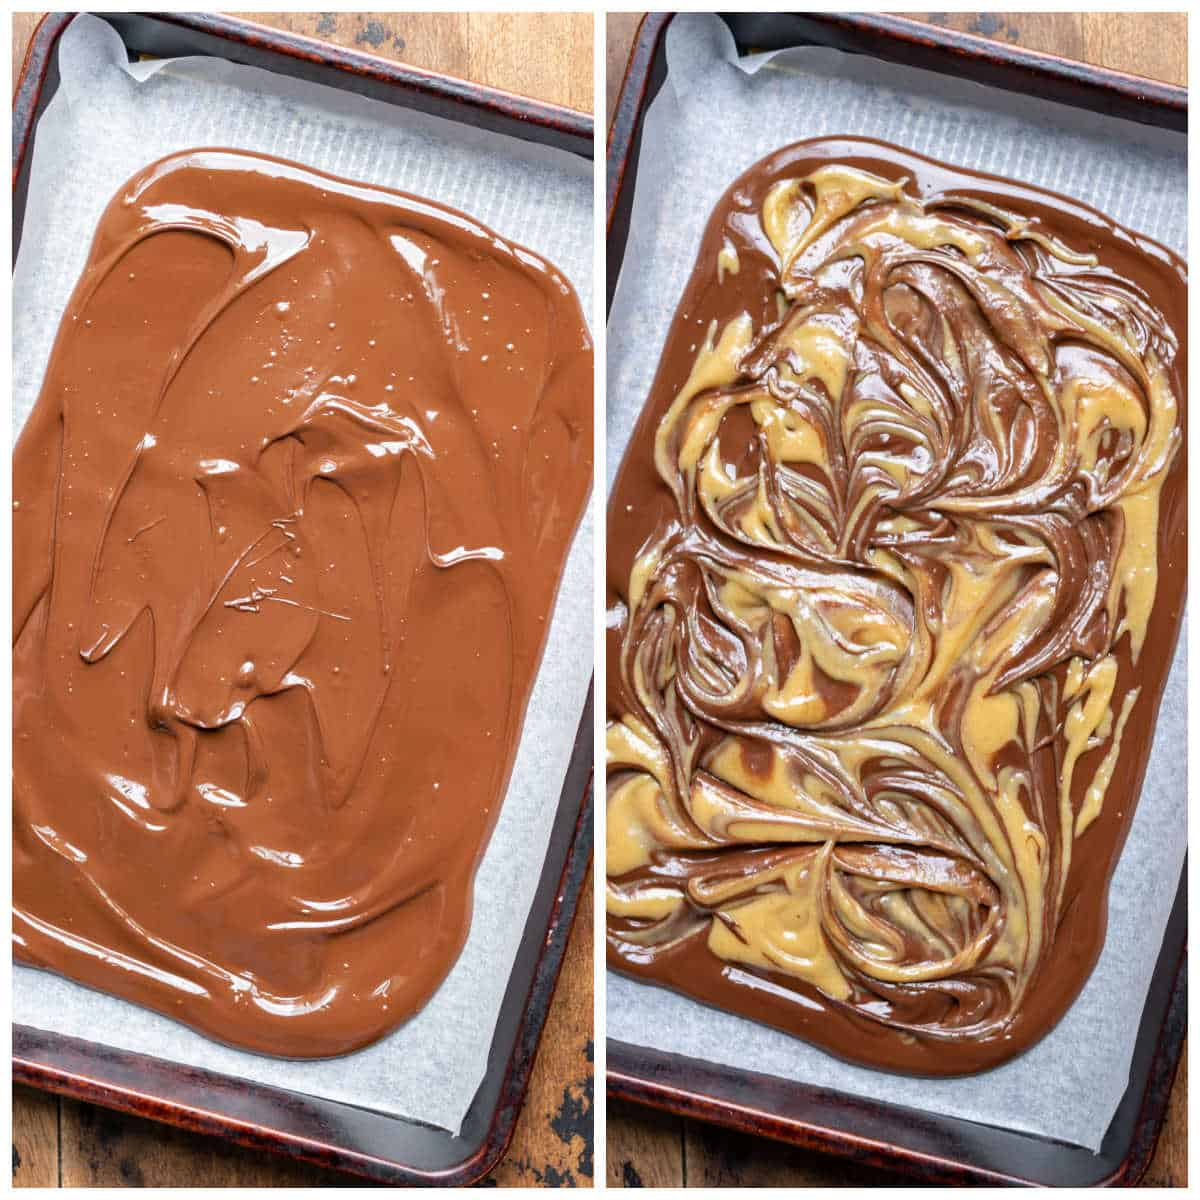 Melted chocolate spread onto a cookie sheet and white chocolate swirled in.